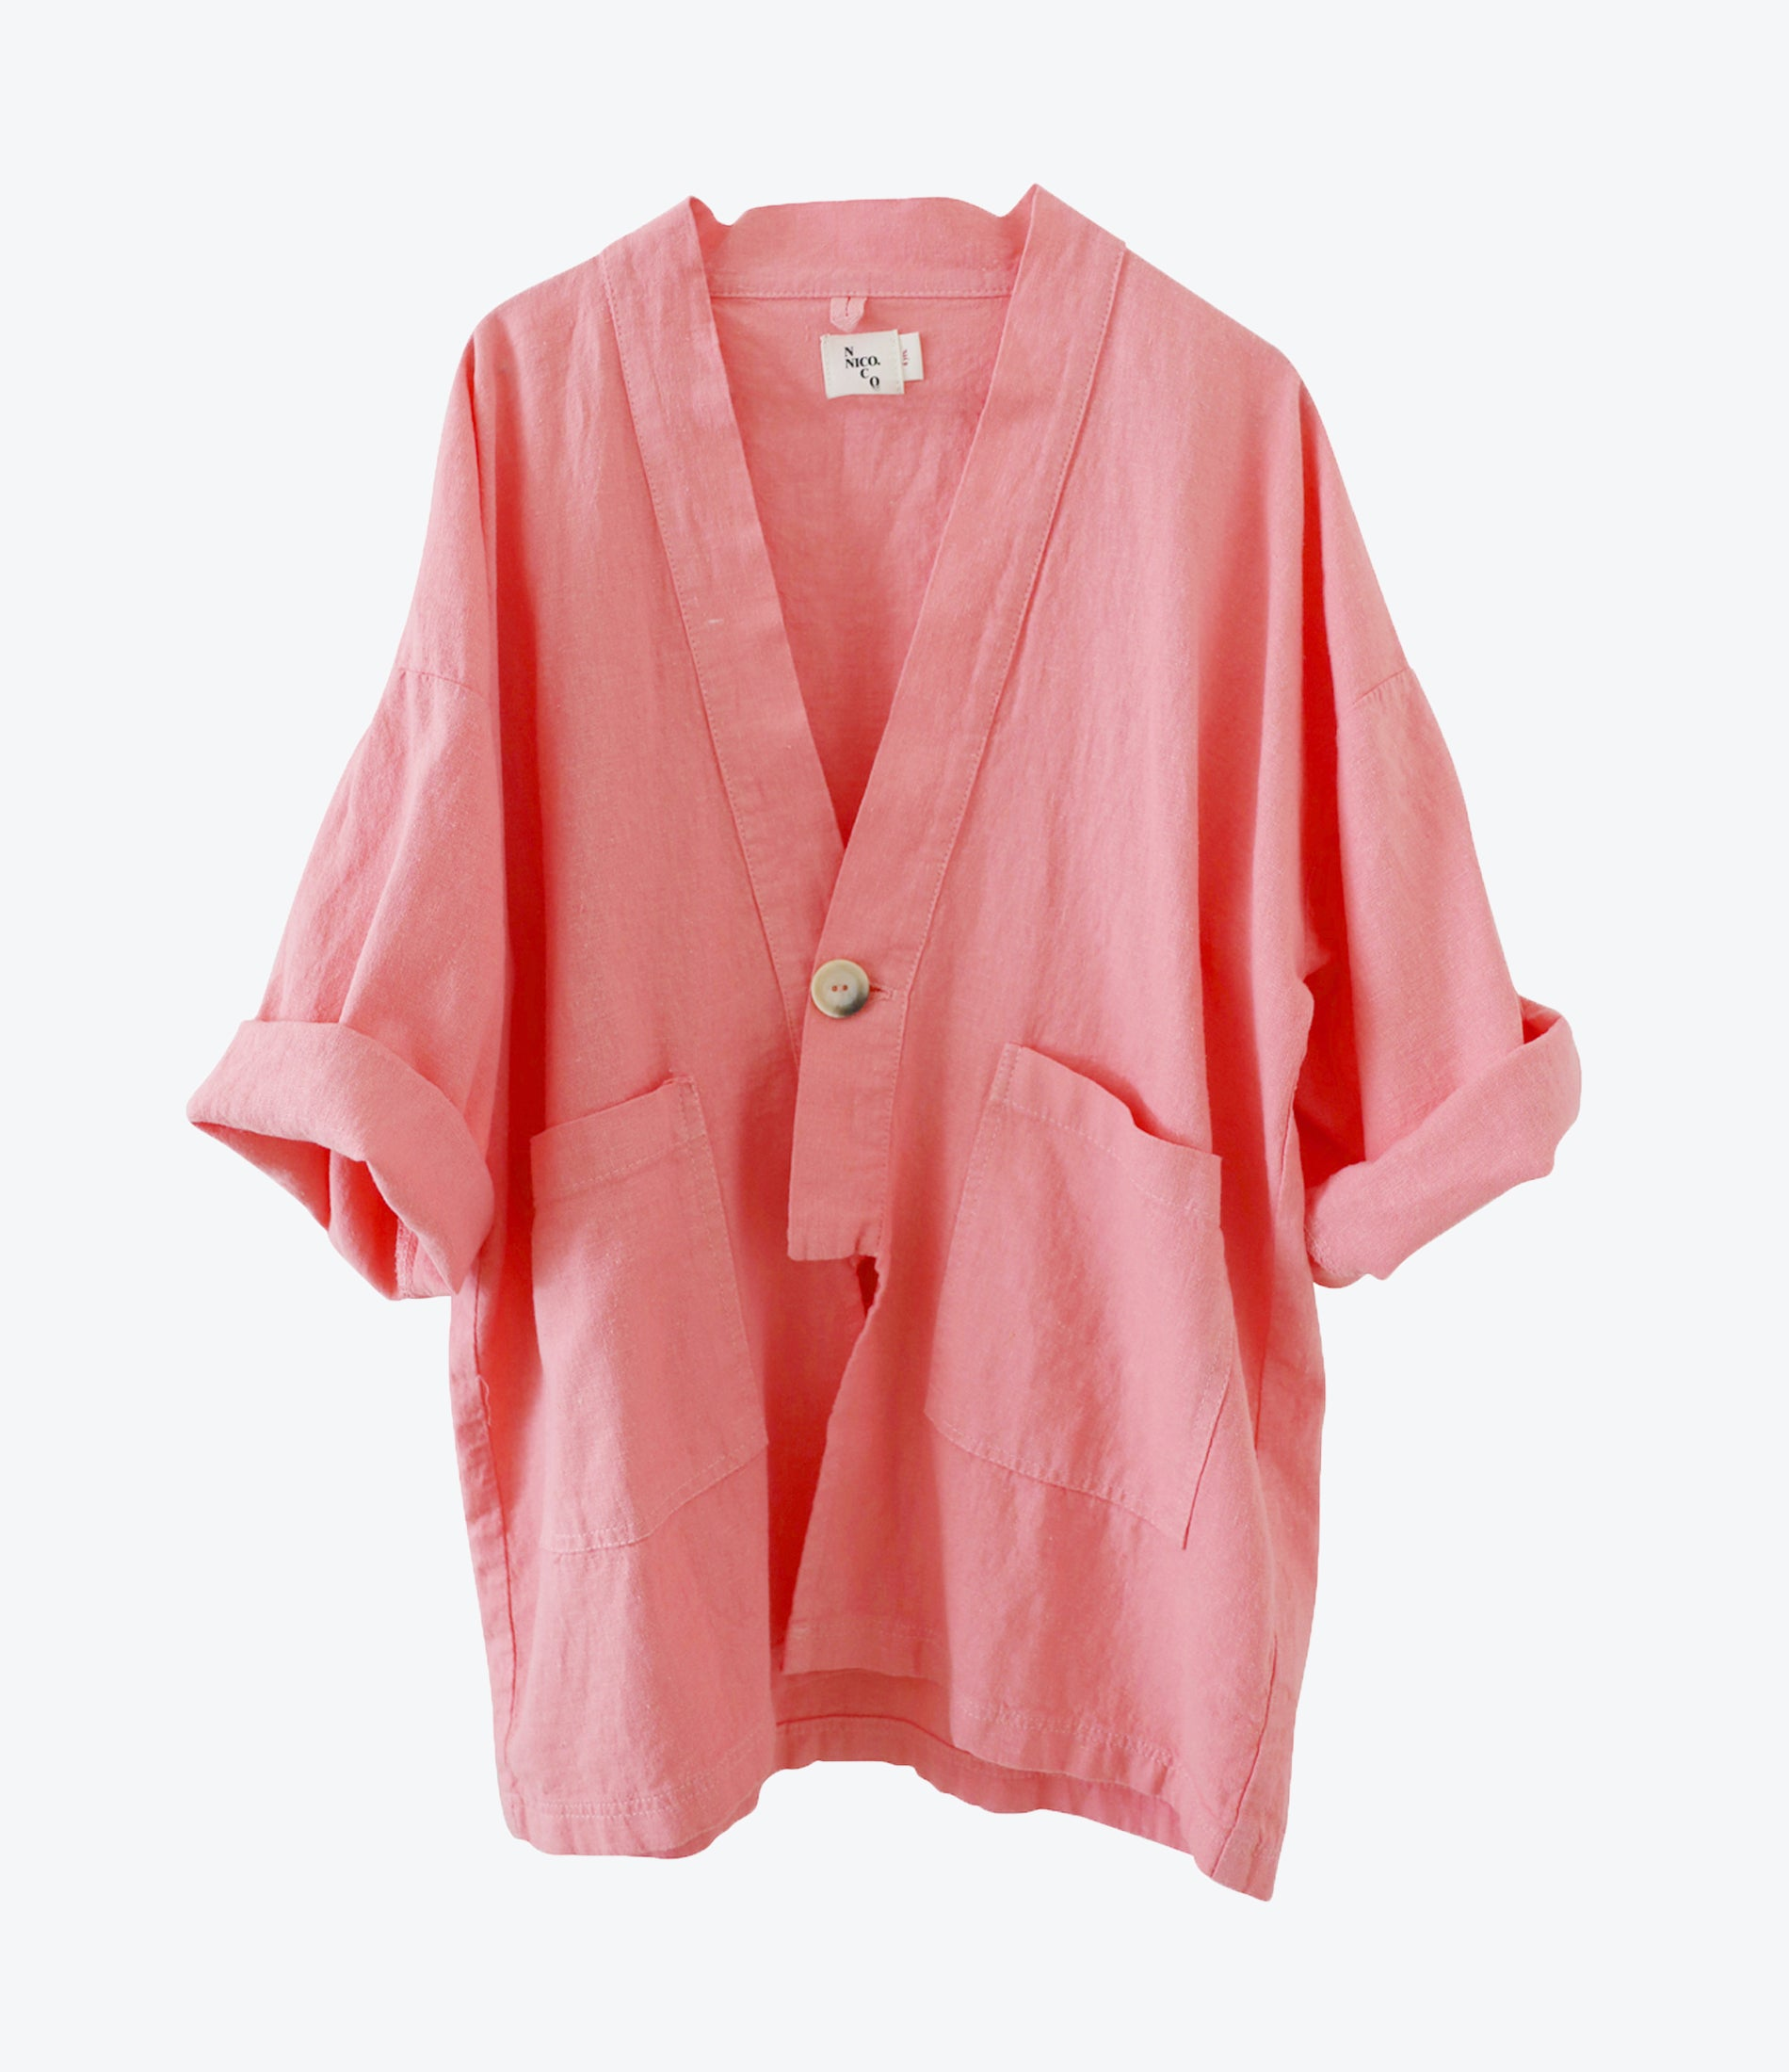 nico nico kimono jacket for girls, sustainable fashion, super cool pieces. Shop magnificent collection at Made mini store